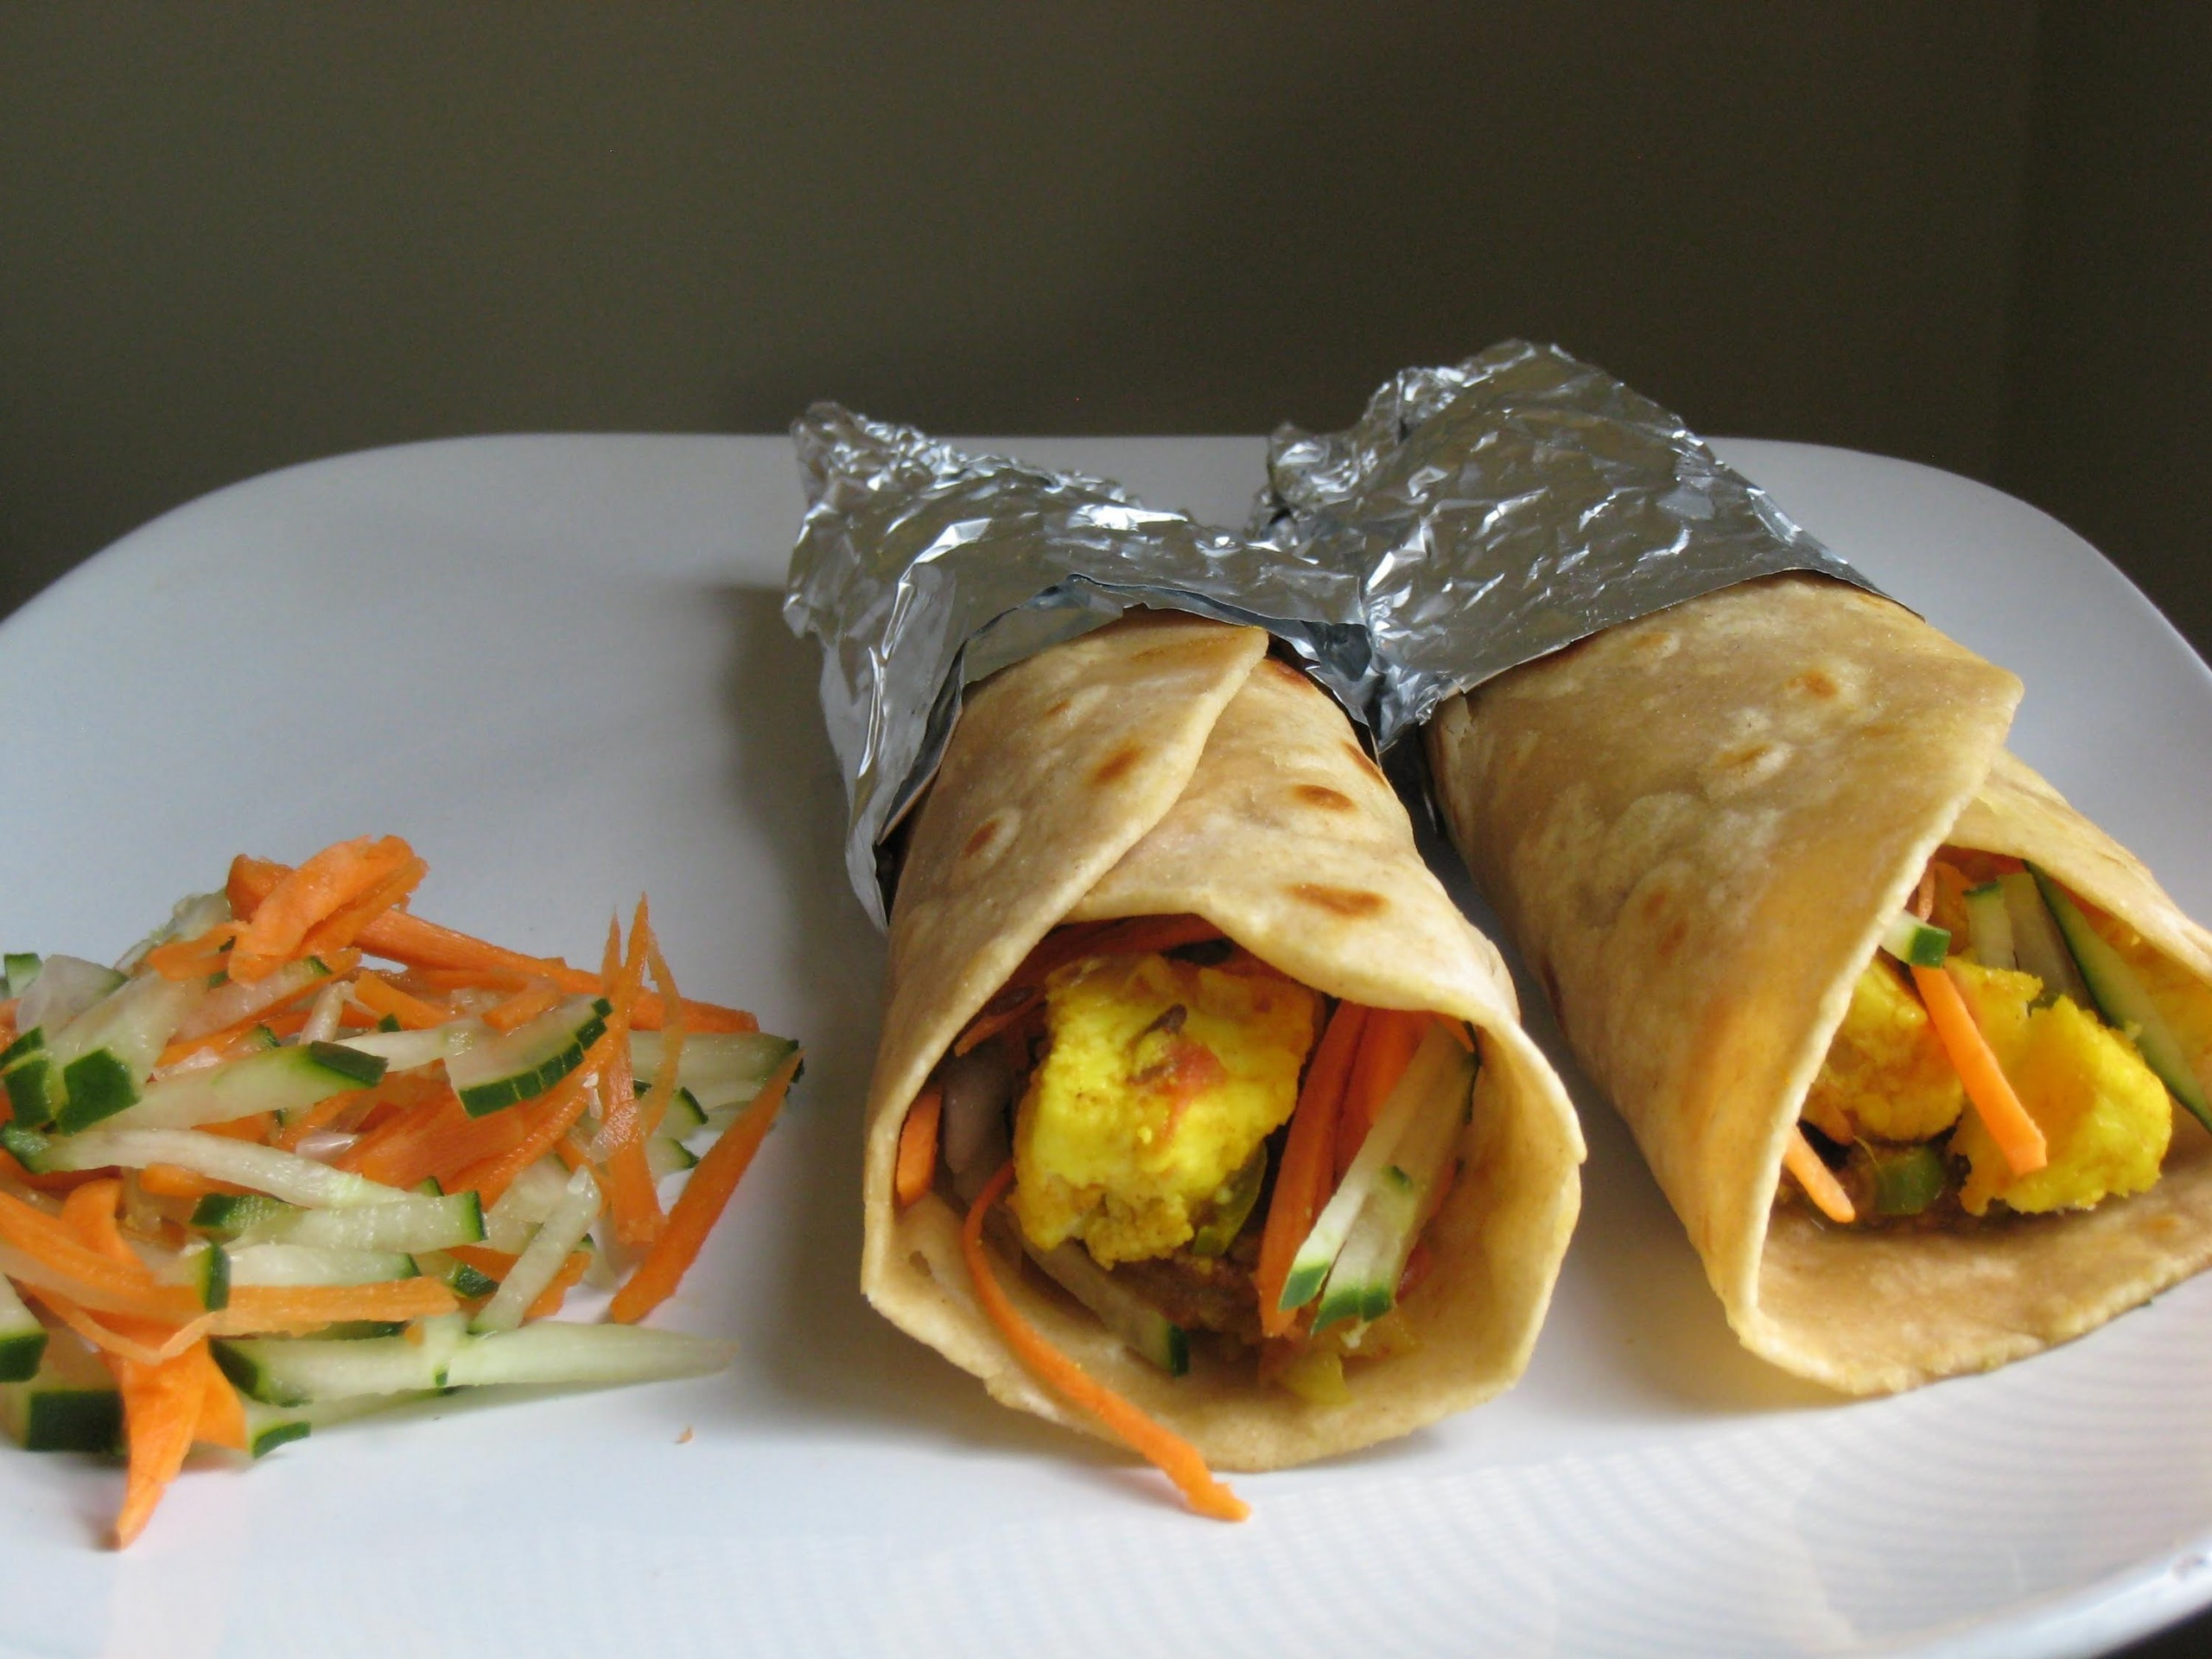 two paneer roti rolls on a plate with a serve of kachumber